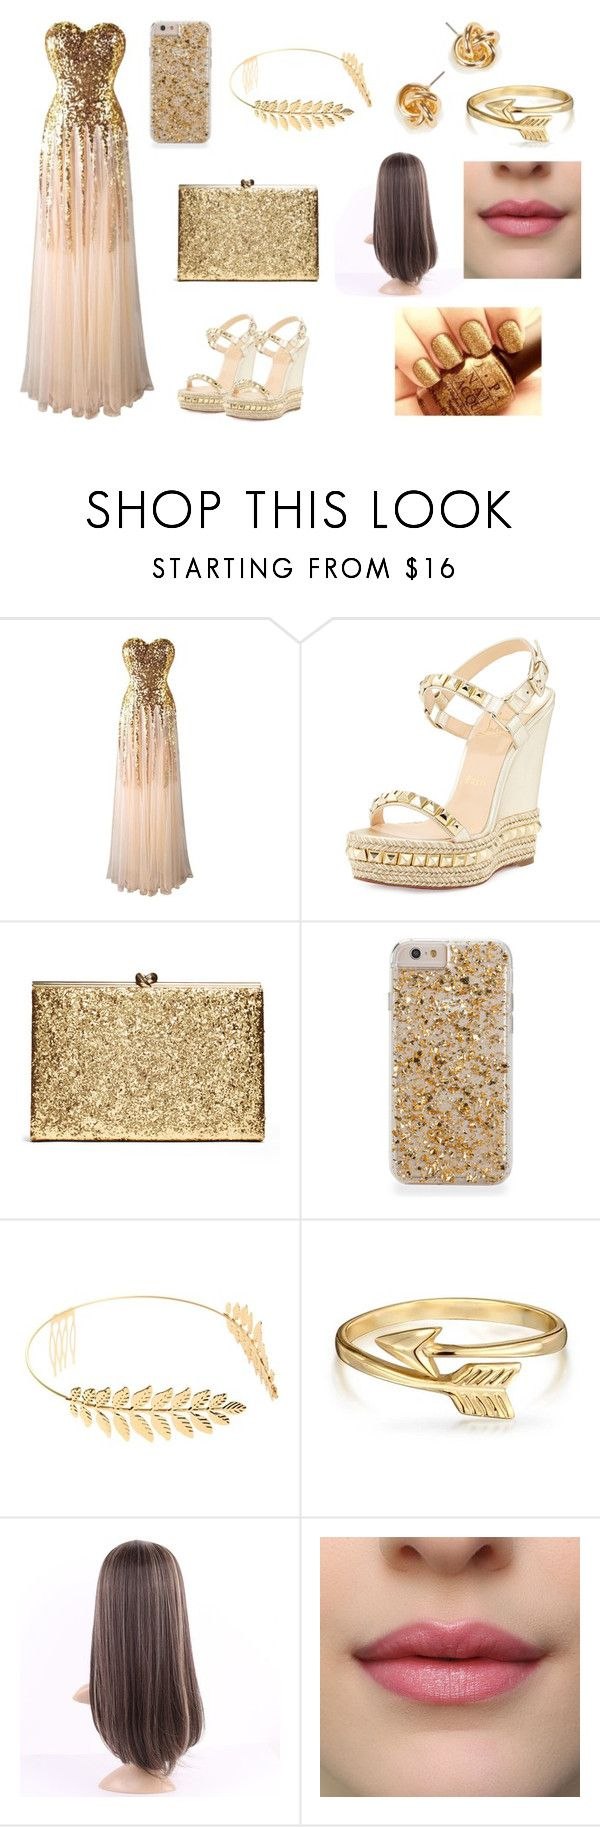 """""""qq"""" by aiste-mini on Polyvore featuring Christian Louboutin, Cara, Bling Jewelry, men's fashion and menswear"""